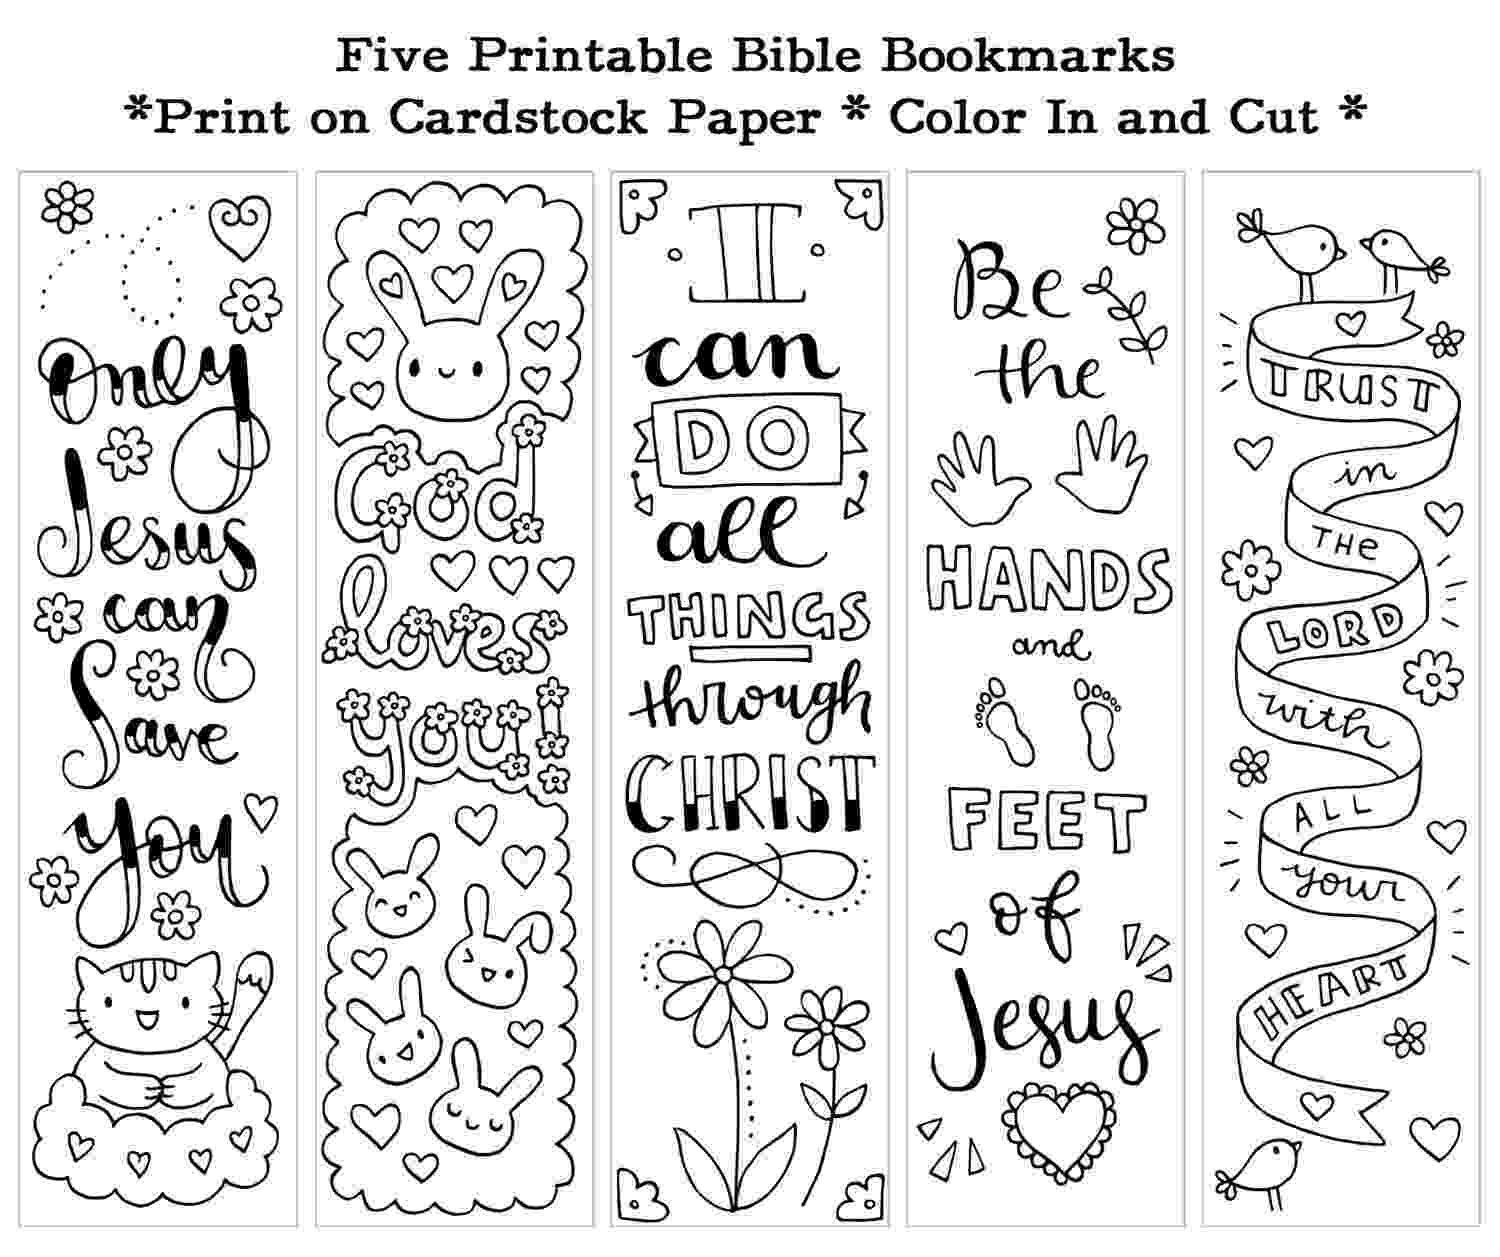 coloring bookmarks thats printable five instant printable color in cute bible bookmarks by susyan bookmarks coloring thats printable